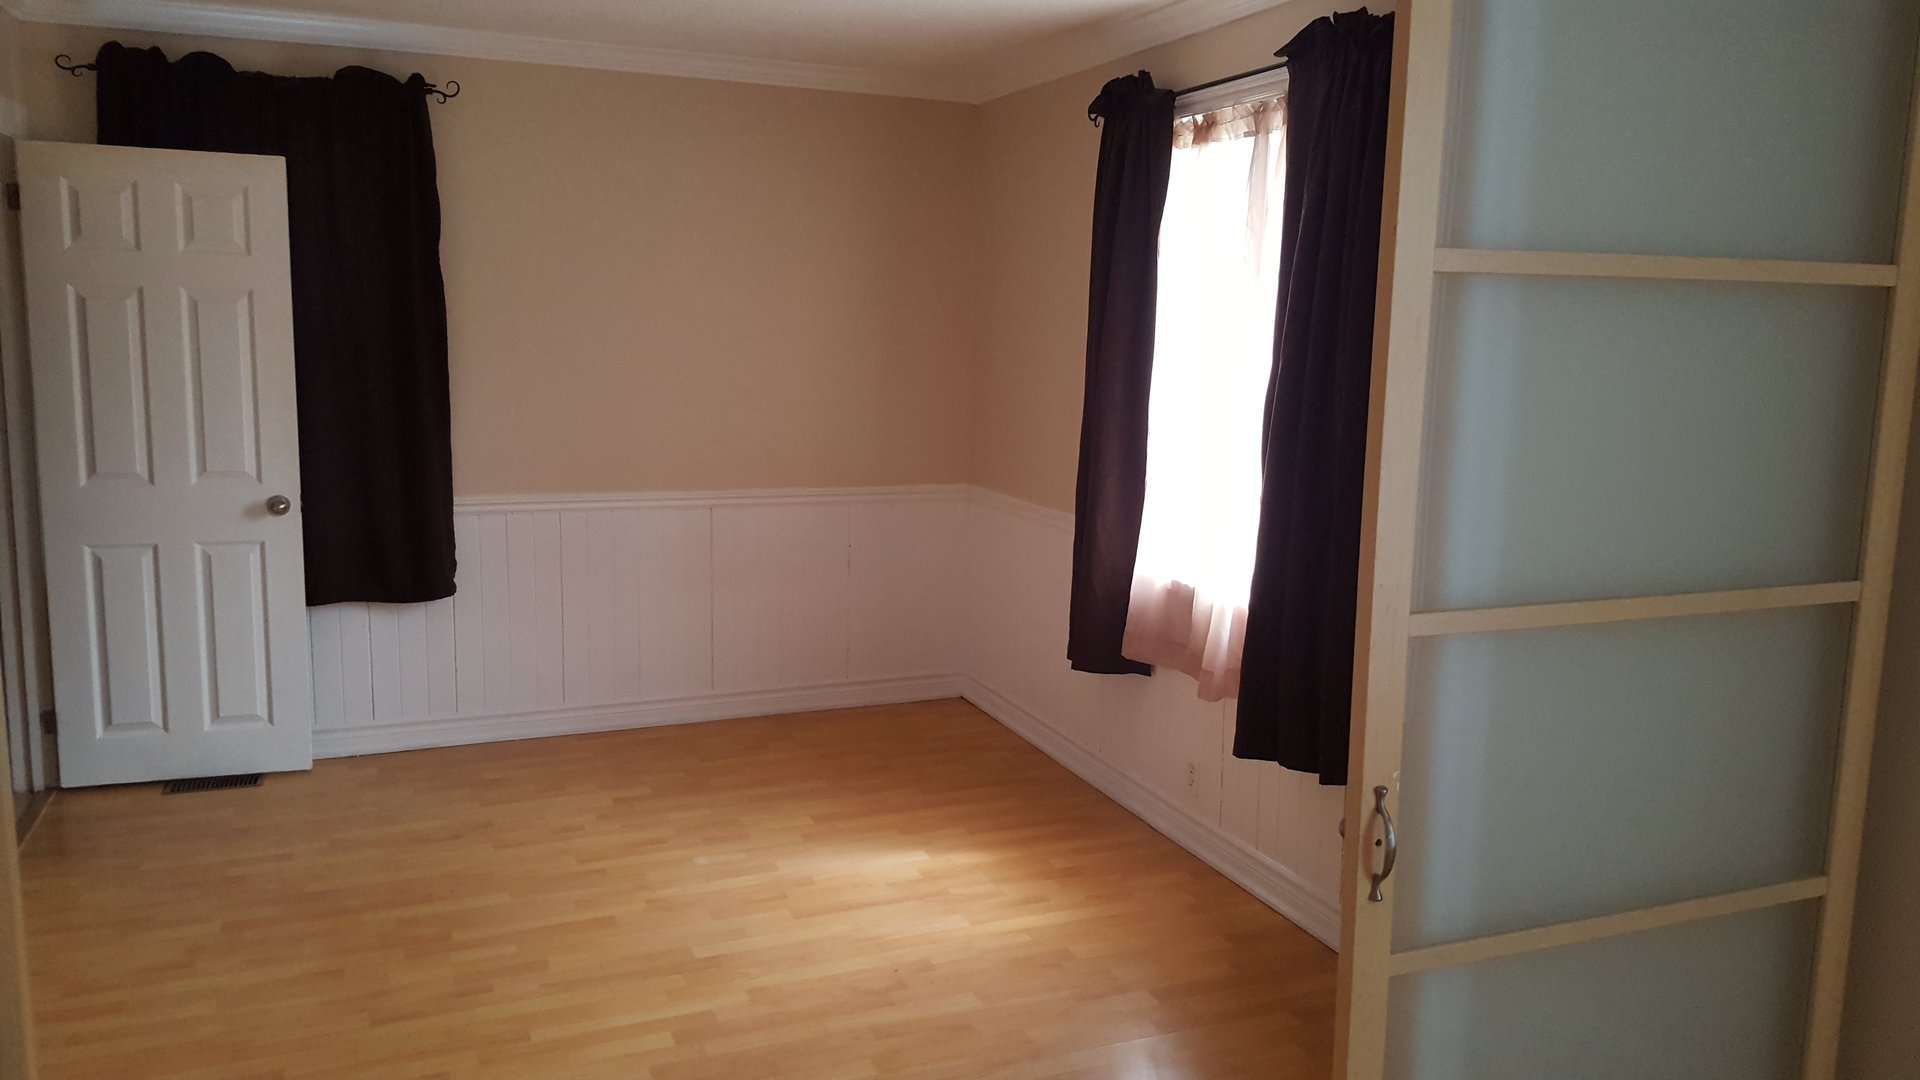 Apartment for rent at 33 Burton St, Belleville, ON. This is the empty room with natural light and hardwood floor.